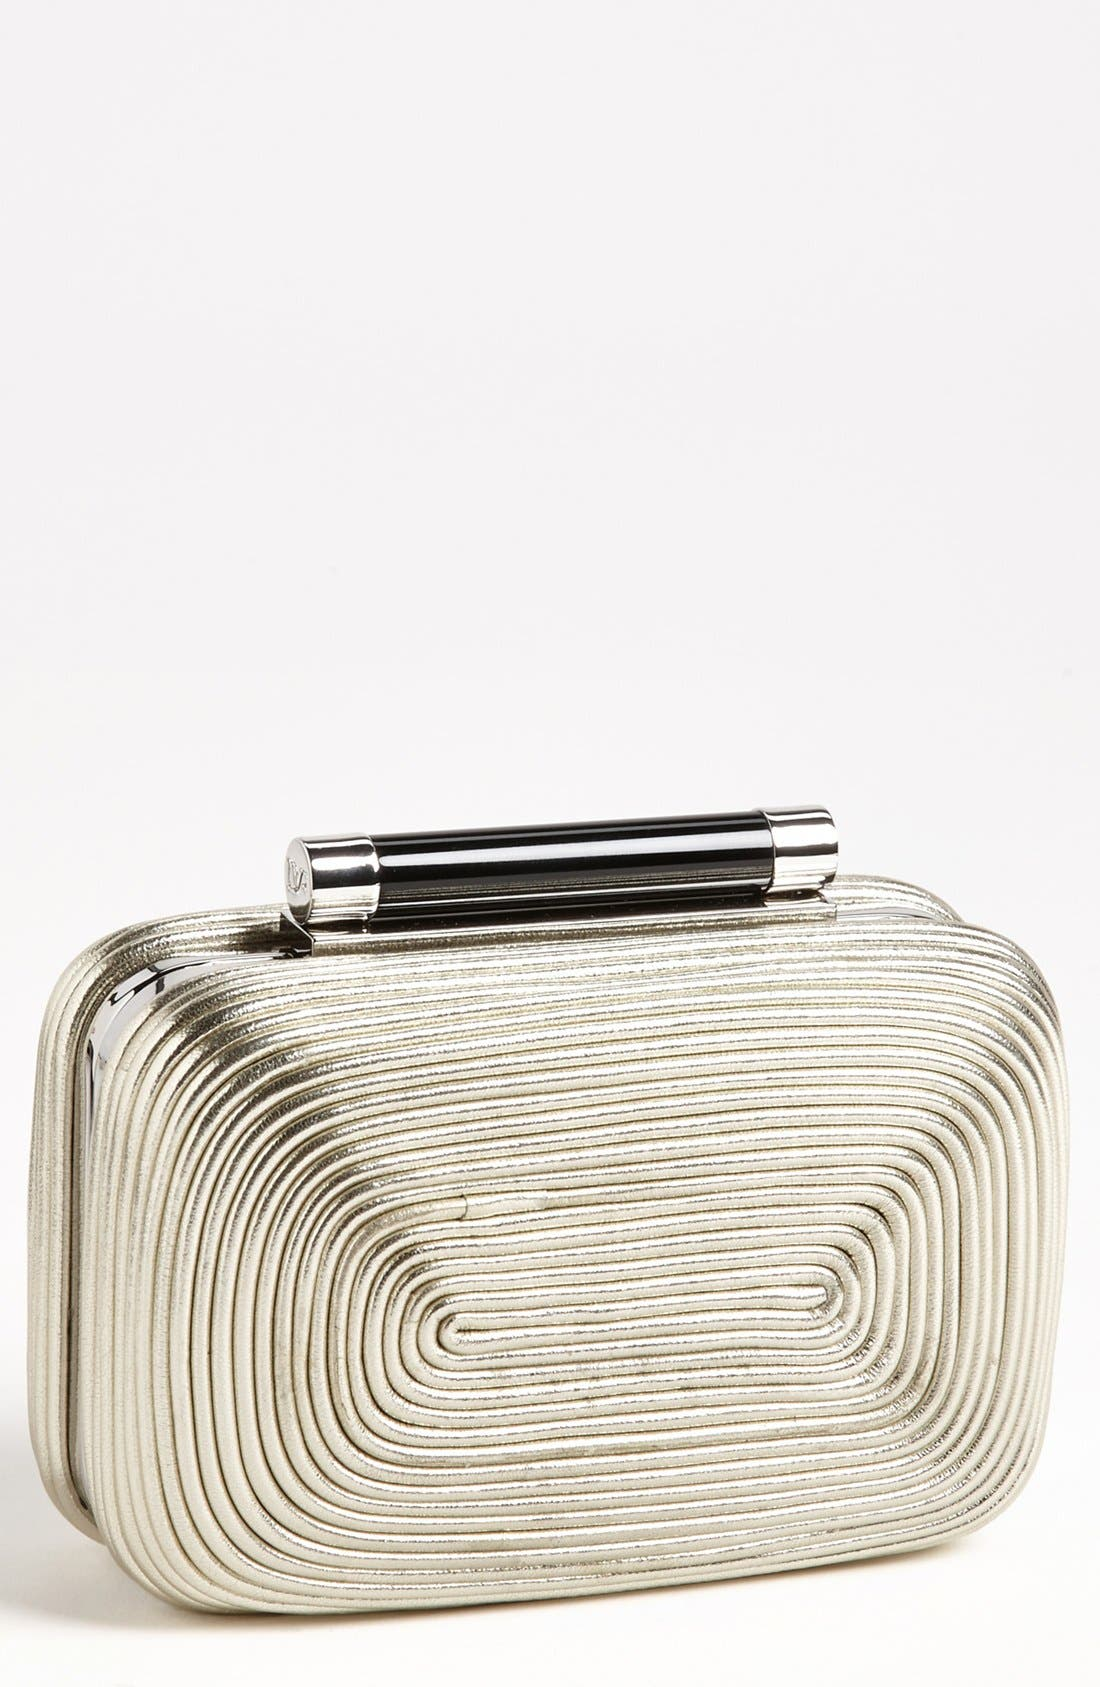 Alternate Image 1 Selected - Diane von Furstenberg 'Tonda - Small' Passementerie Metallic Clutch